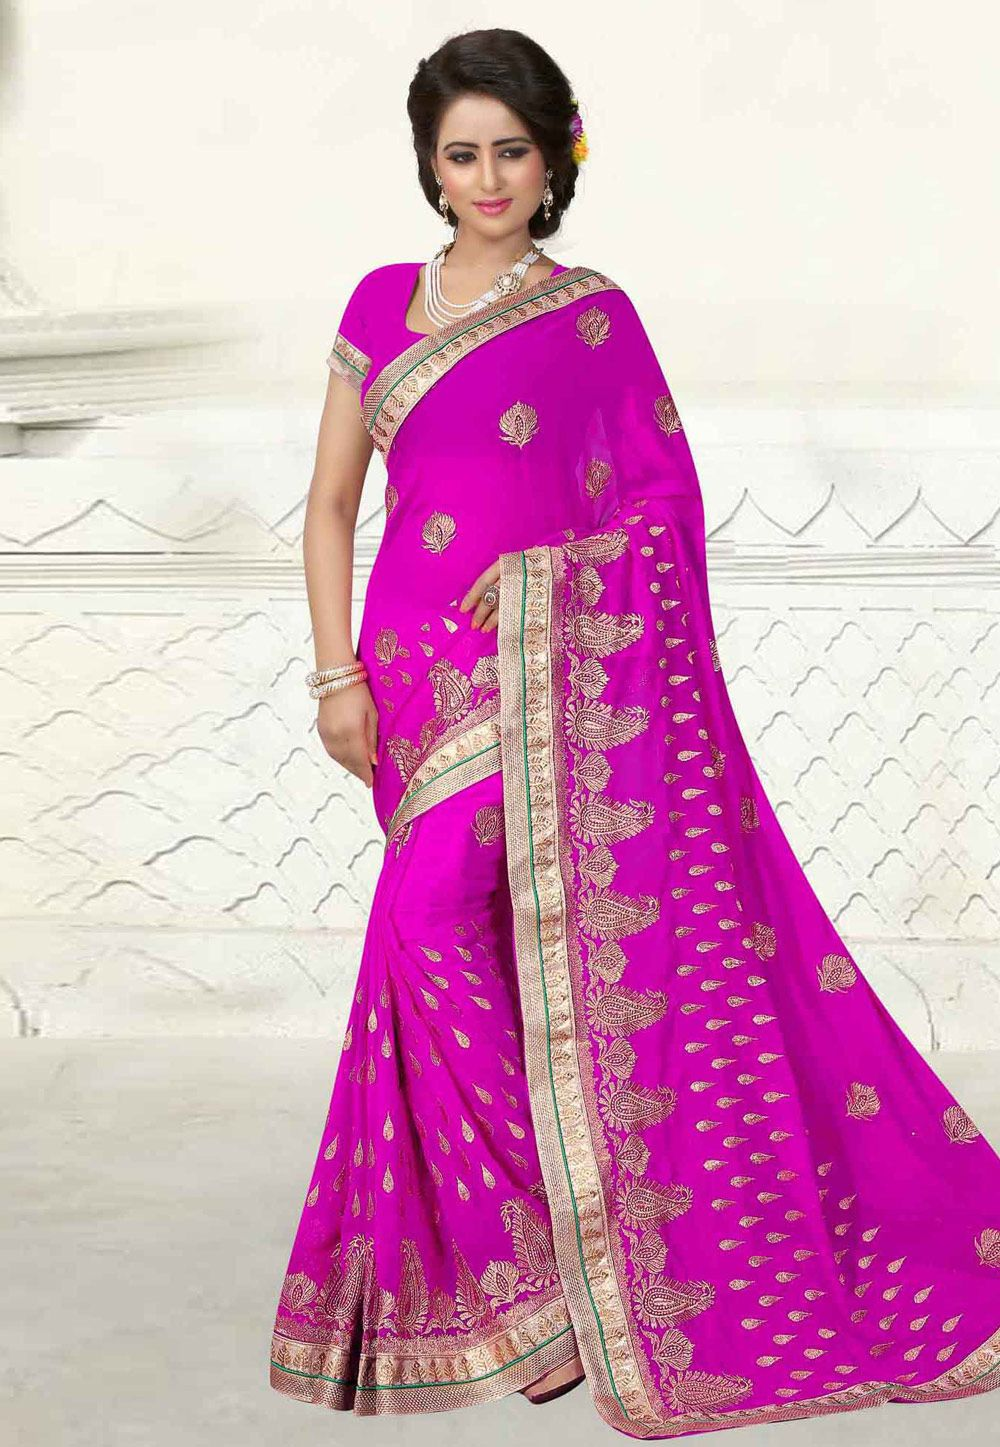 250c7b6cc7f26 Buy Magenta Georgette Saree With Blouse 163176 with blouse online at lowest  price from vast collection of sarees at Indianclothstore.com.